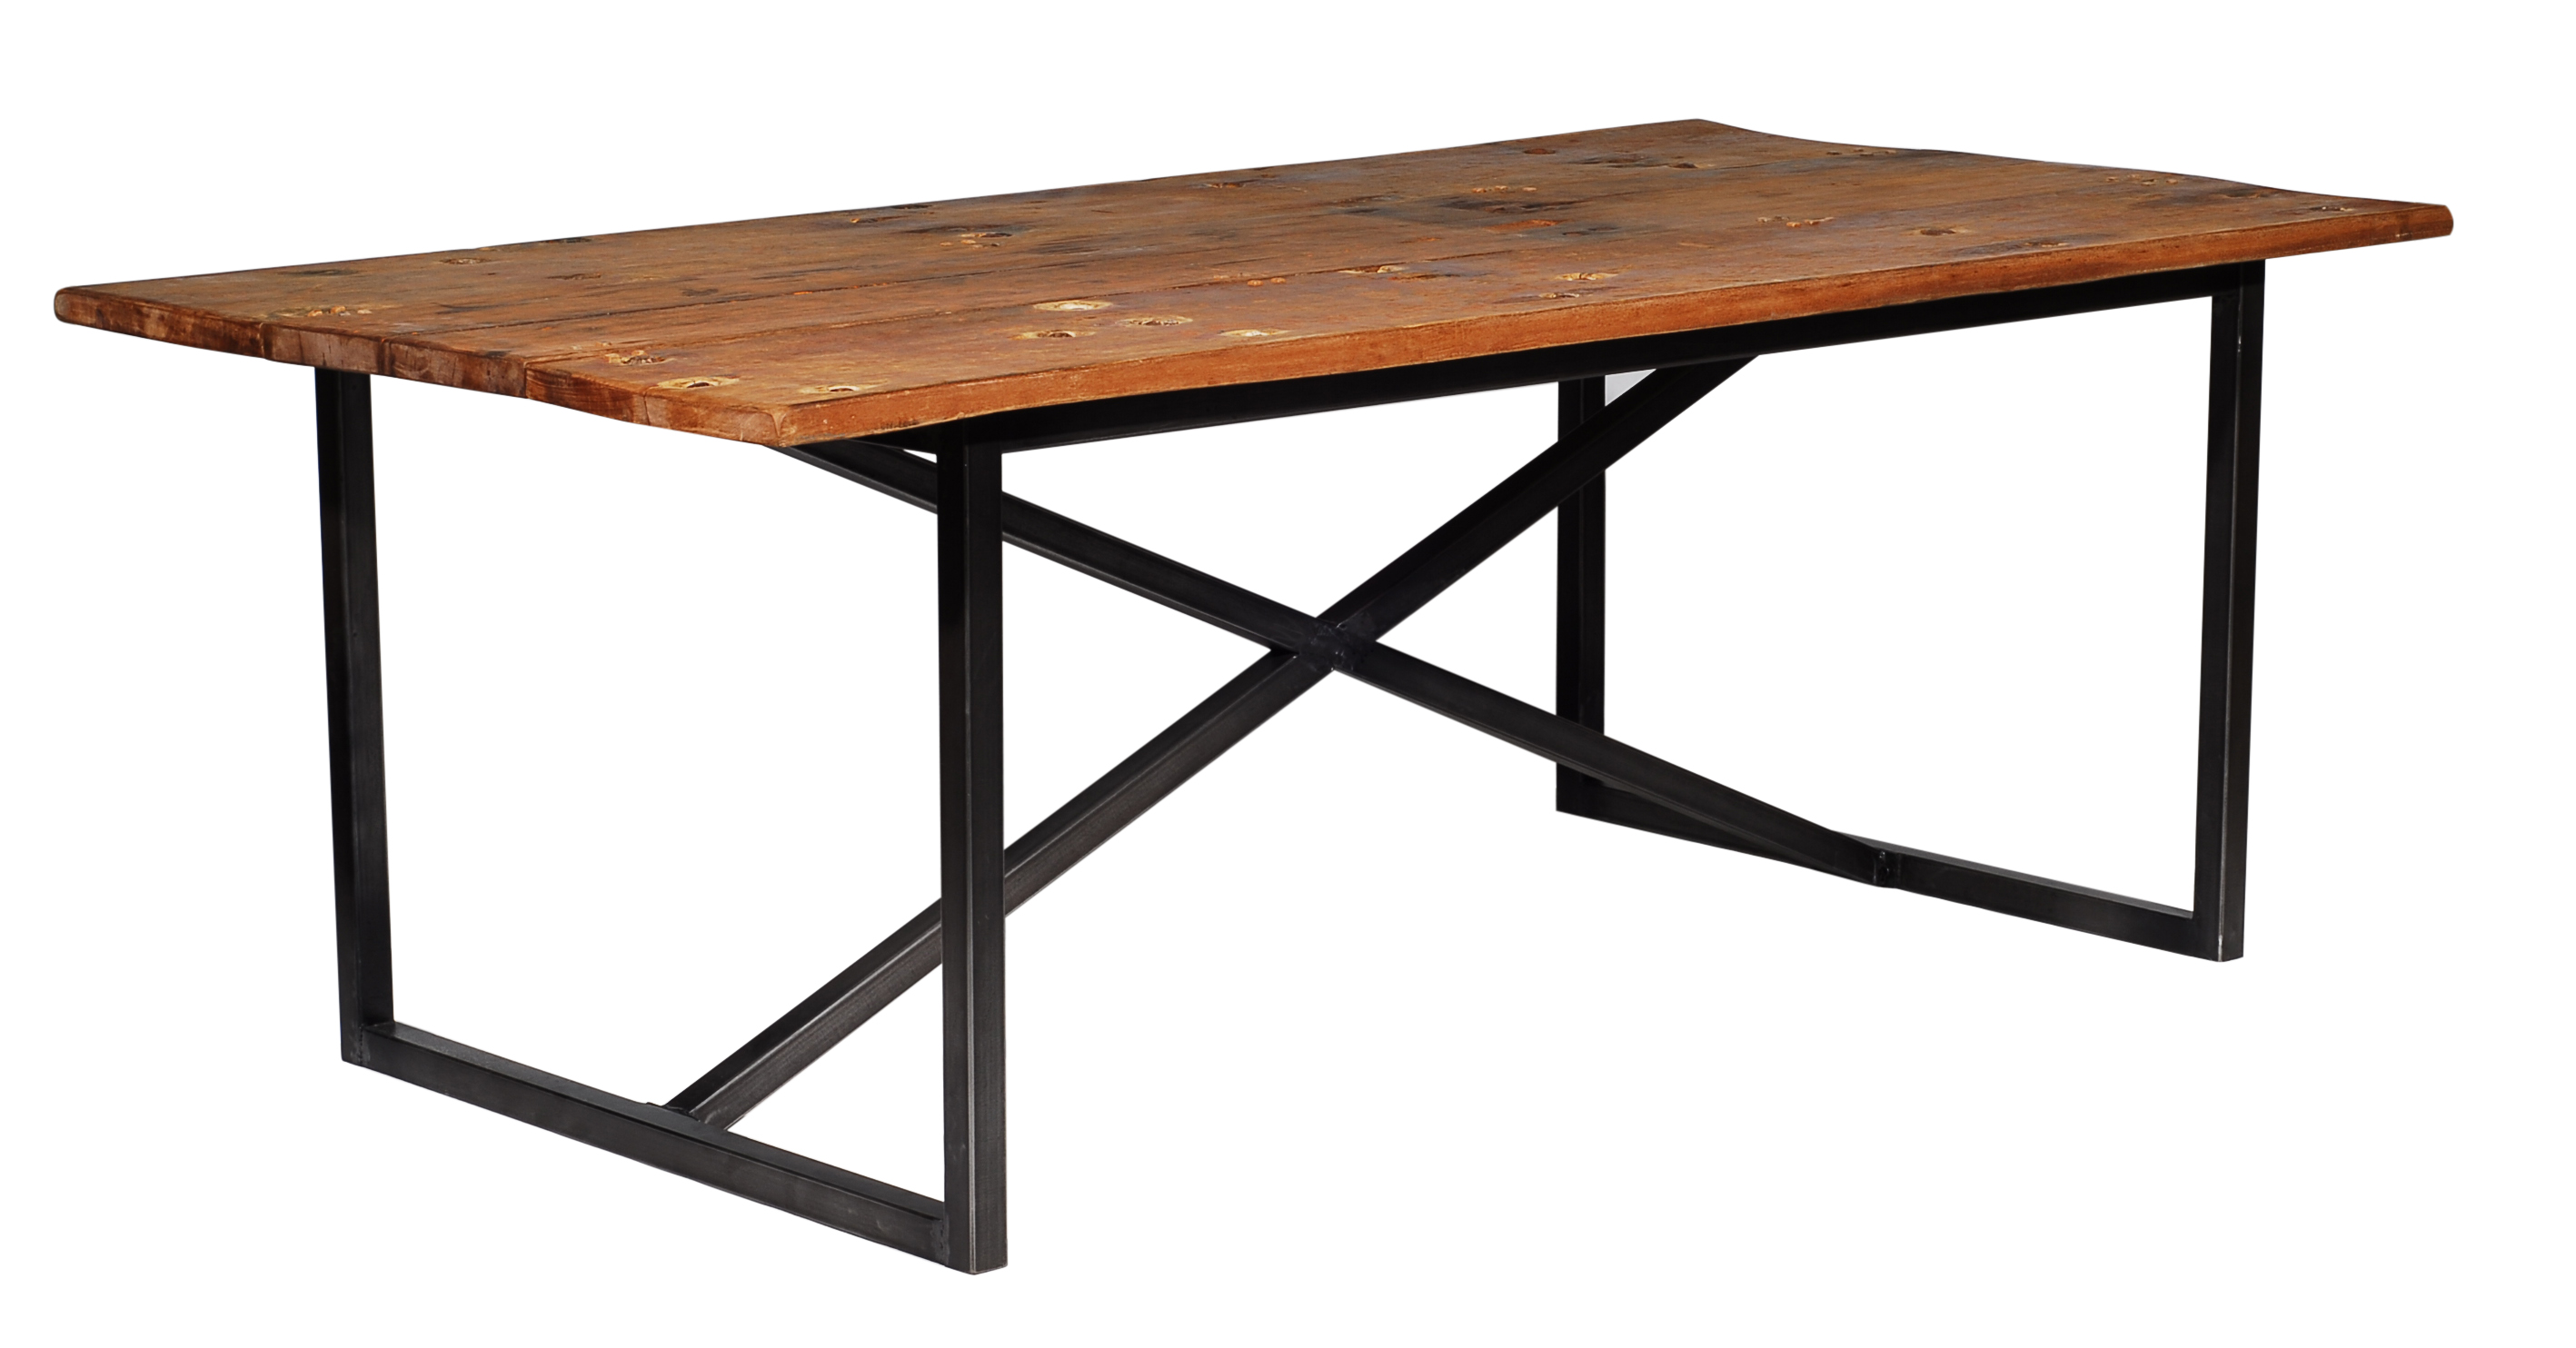 Lot 30 - Axel Dining Table The Axel Dining Table Combines Old World And Industrial With Its Combination of